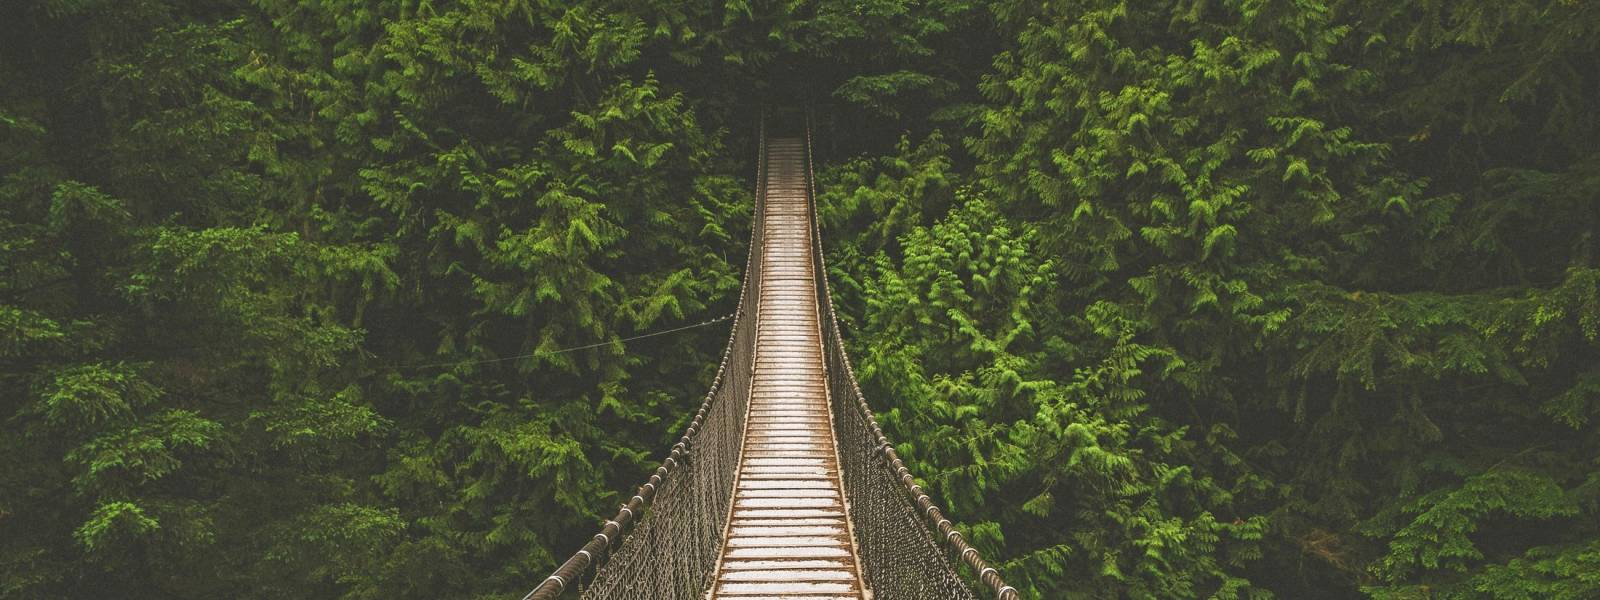 a bridge surrounded by trees